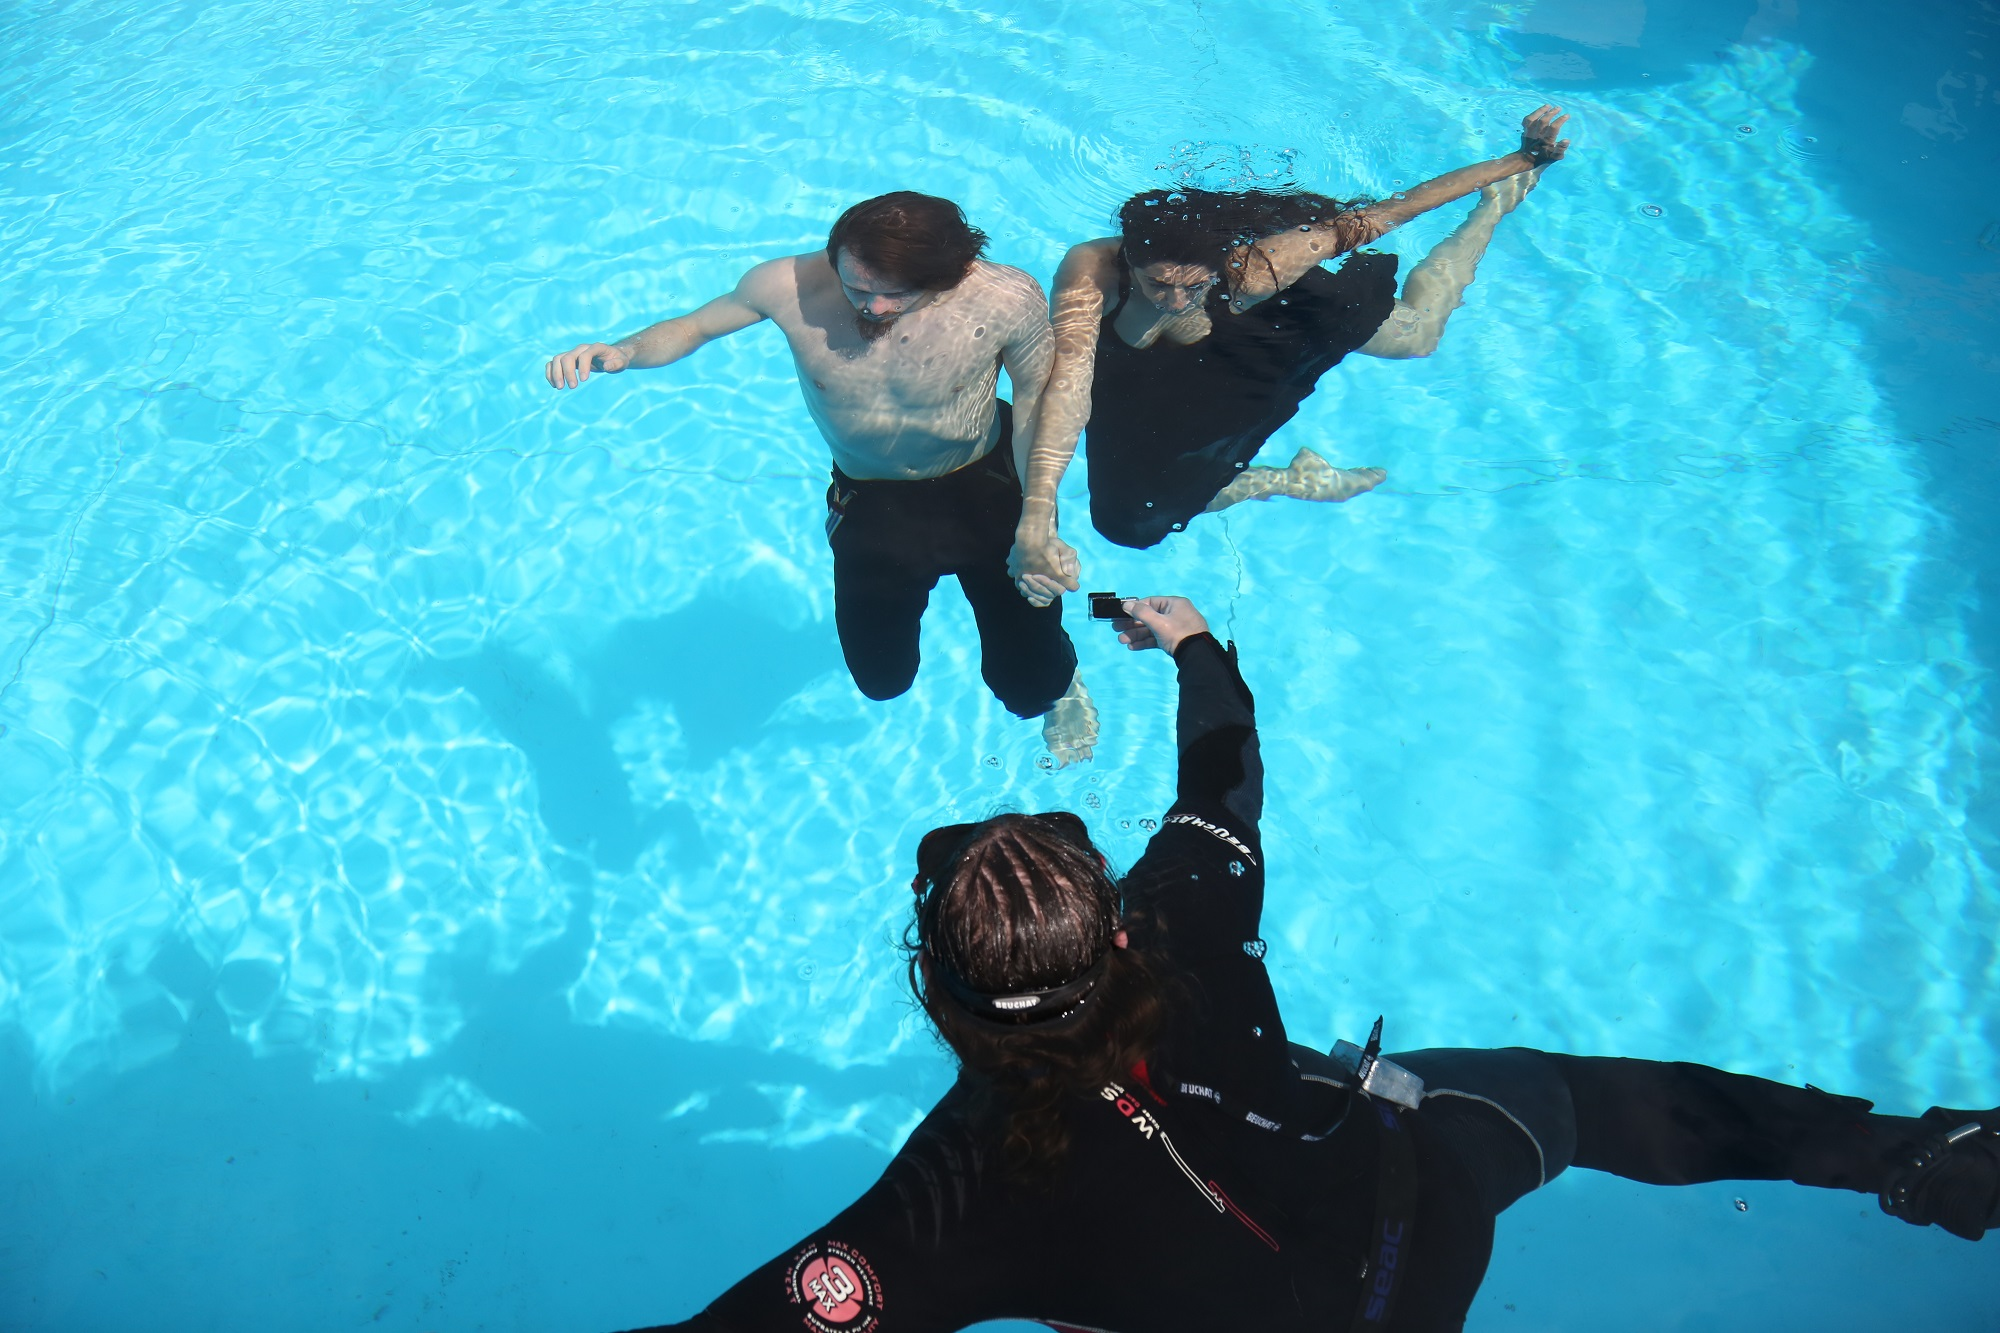 Dancers Gabin Corredor and Zoe Camilleri and underwater camera operator Steve Muscat filming at the National Pool Complex last winter.